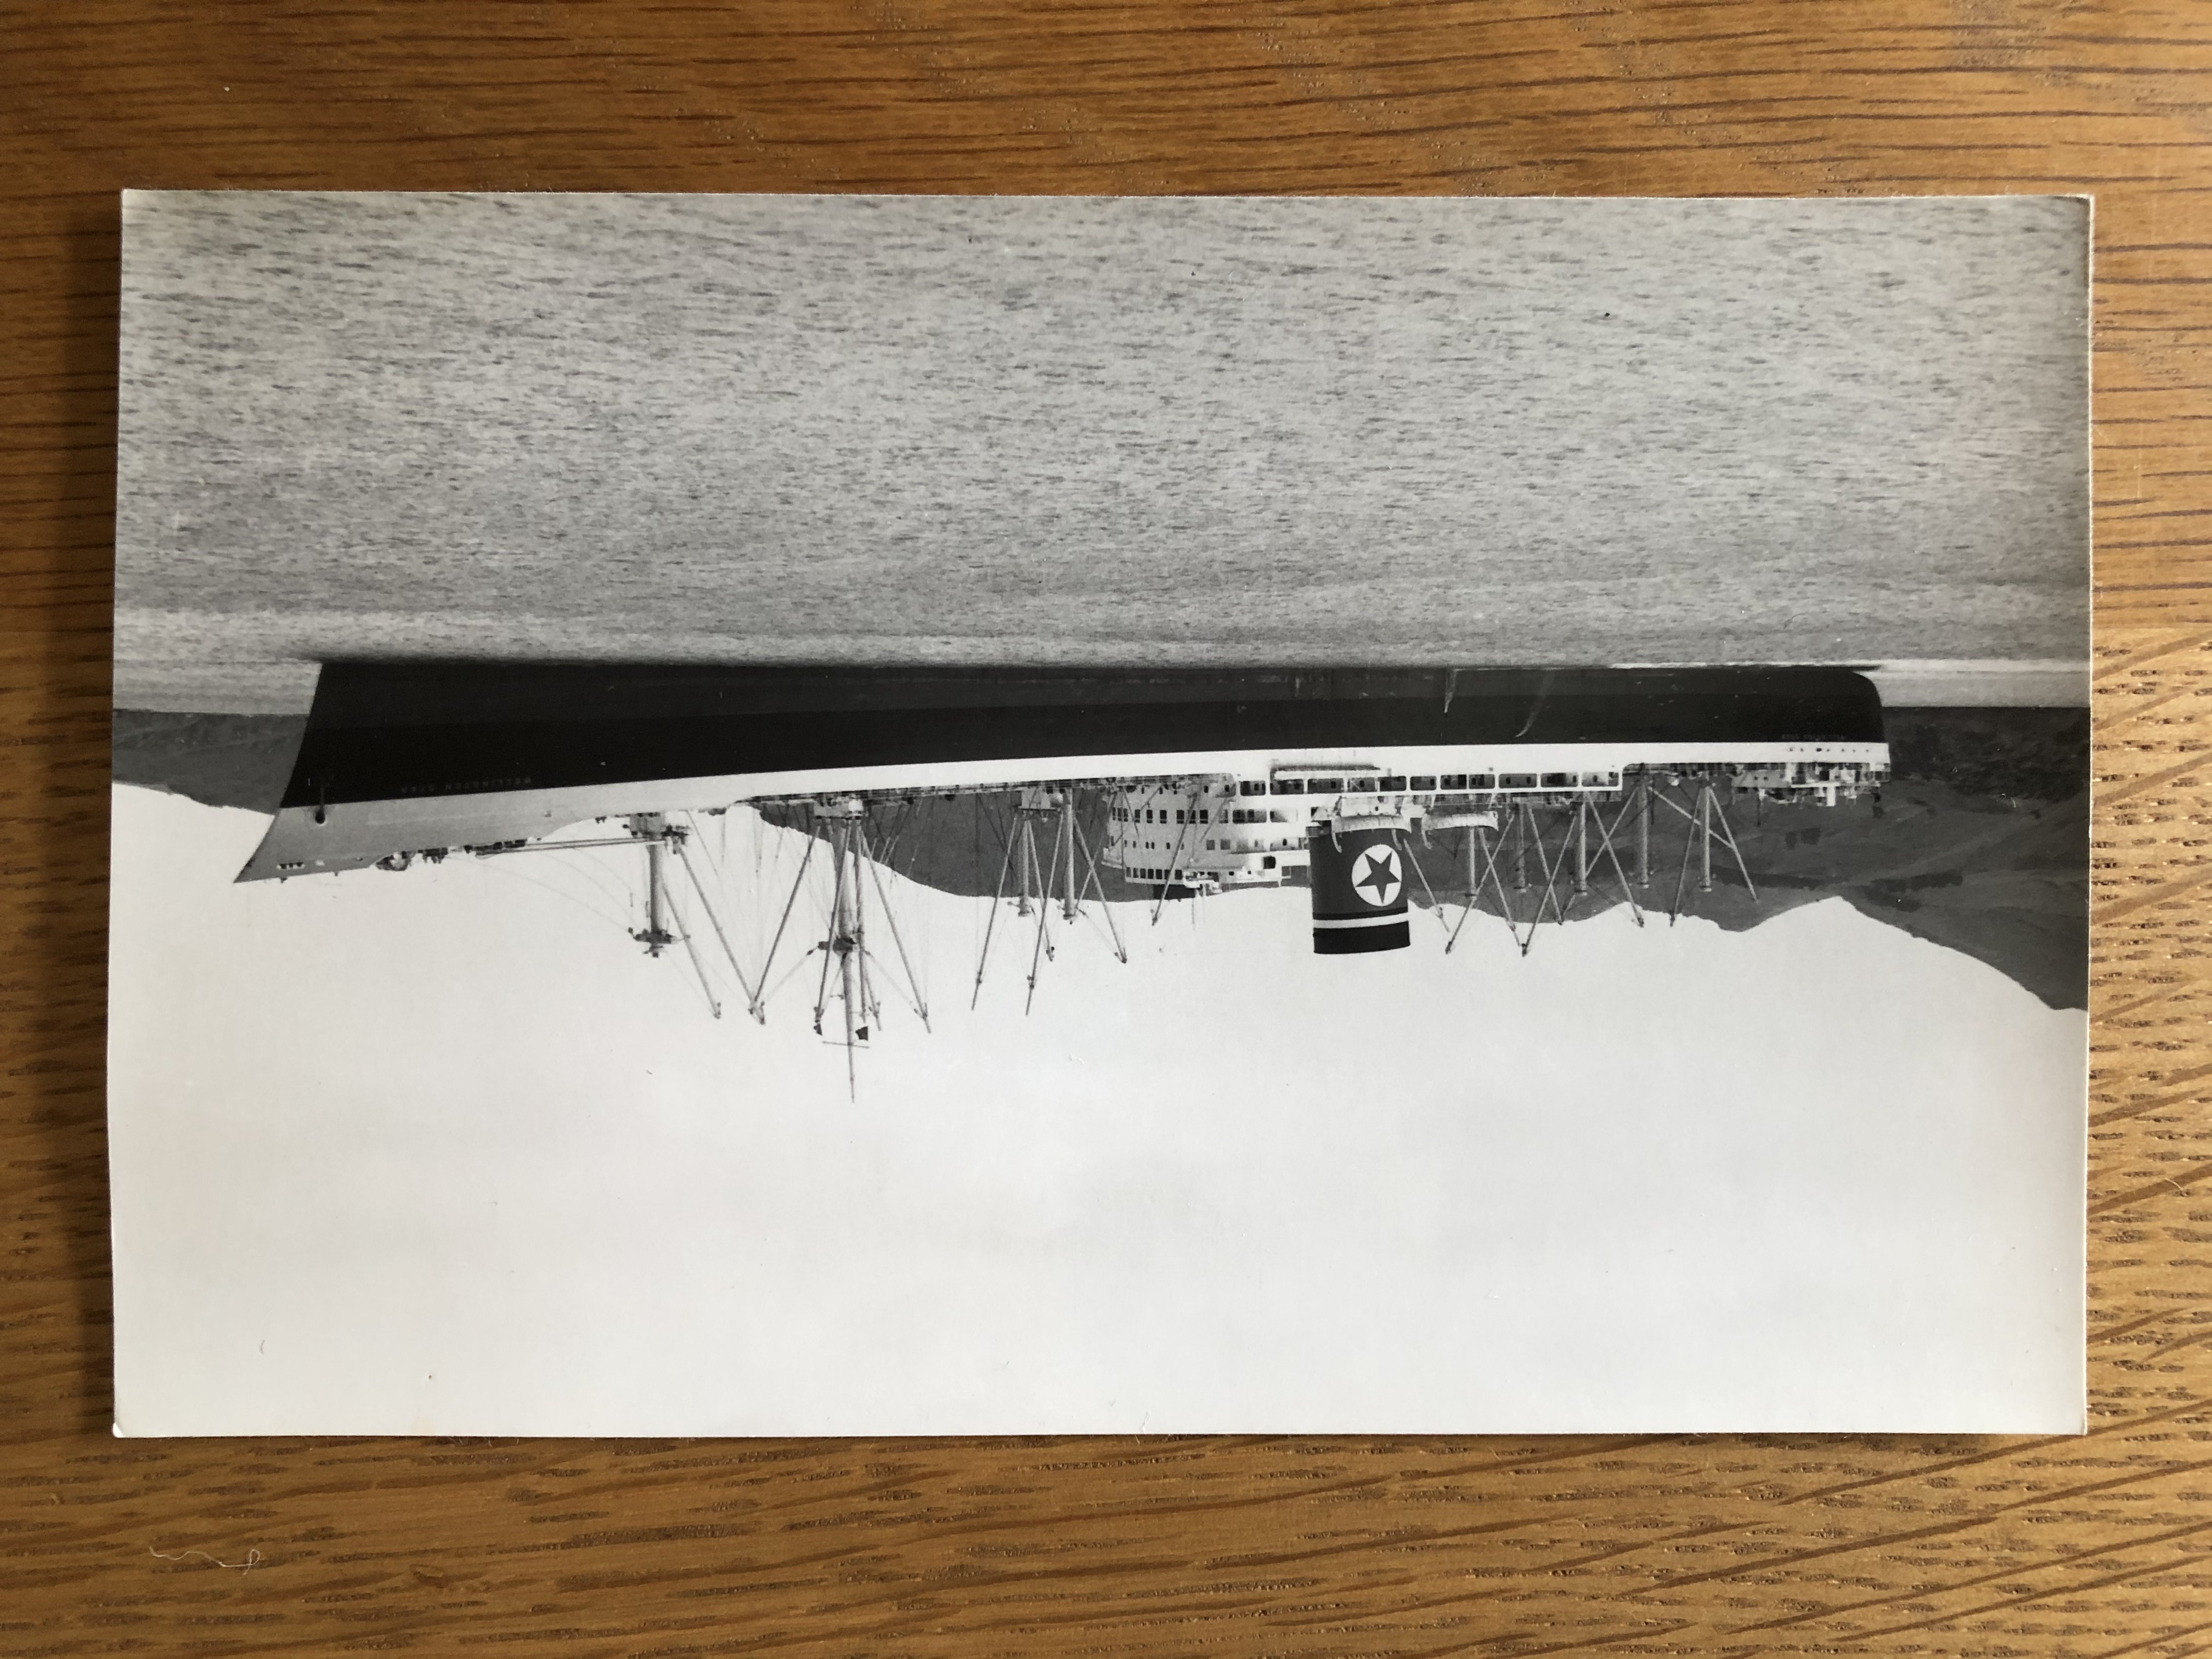 B&W PHOTOGRAPH FROM THE VESSEL THE WELLINGTON STAR